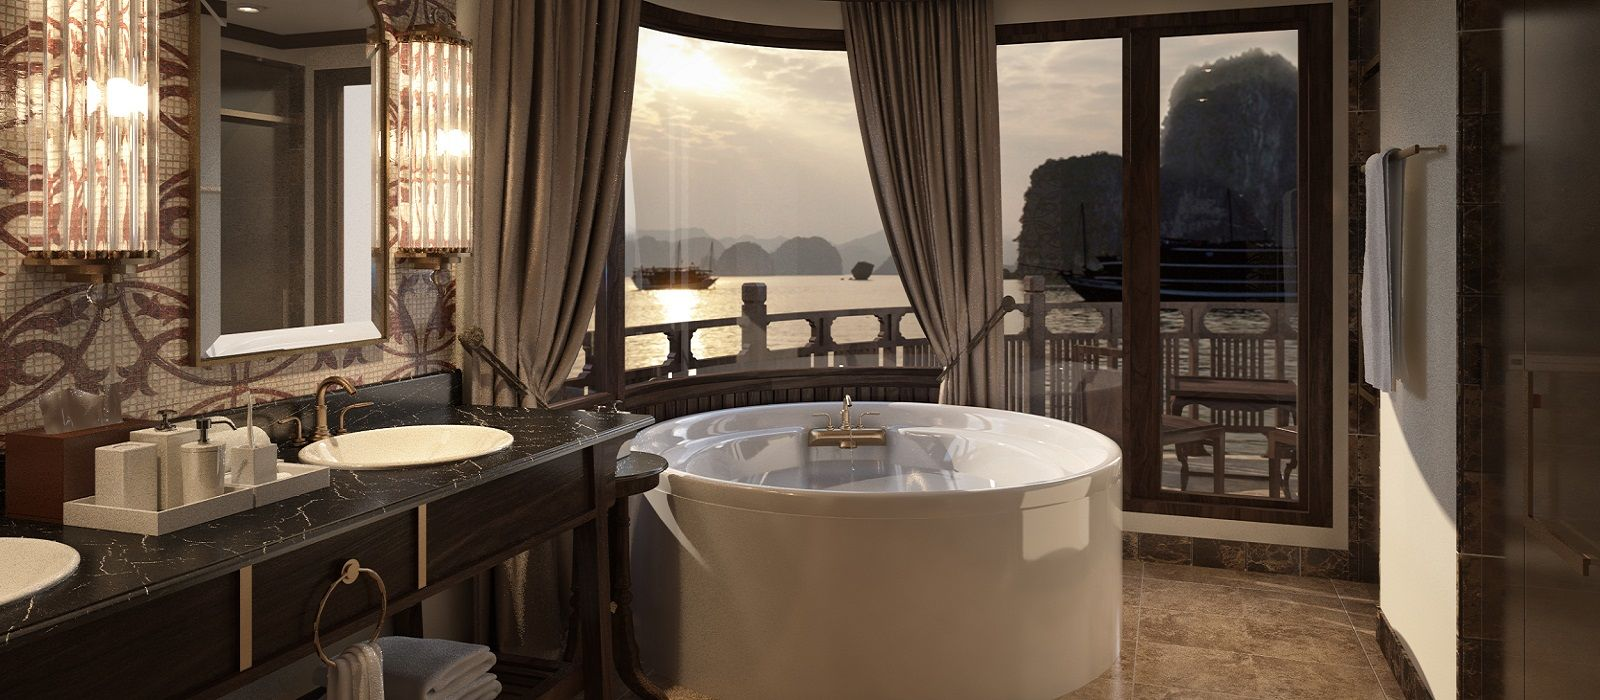 Hotel Ginger Cruise Halong Bay Vietnam